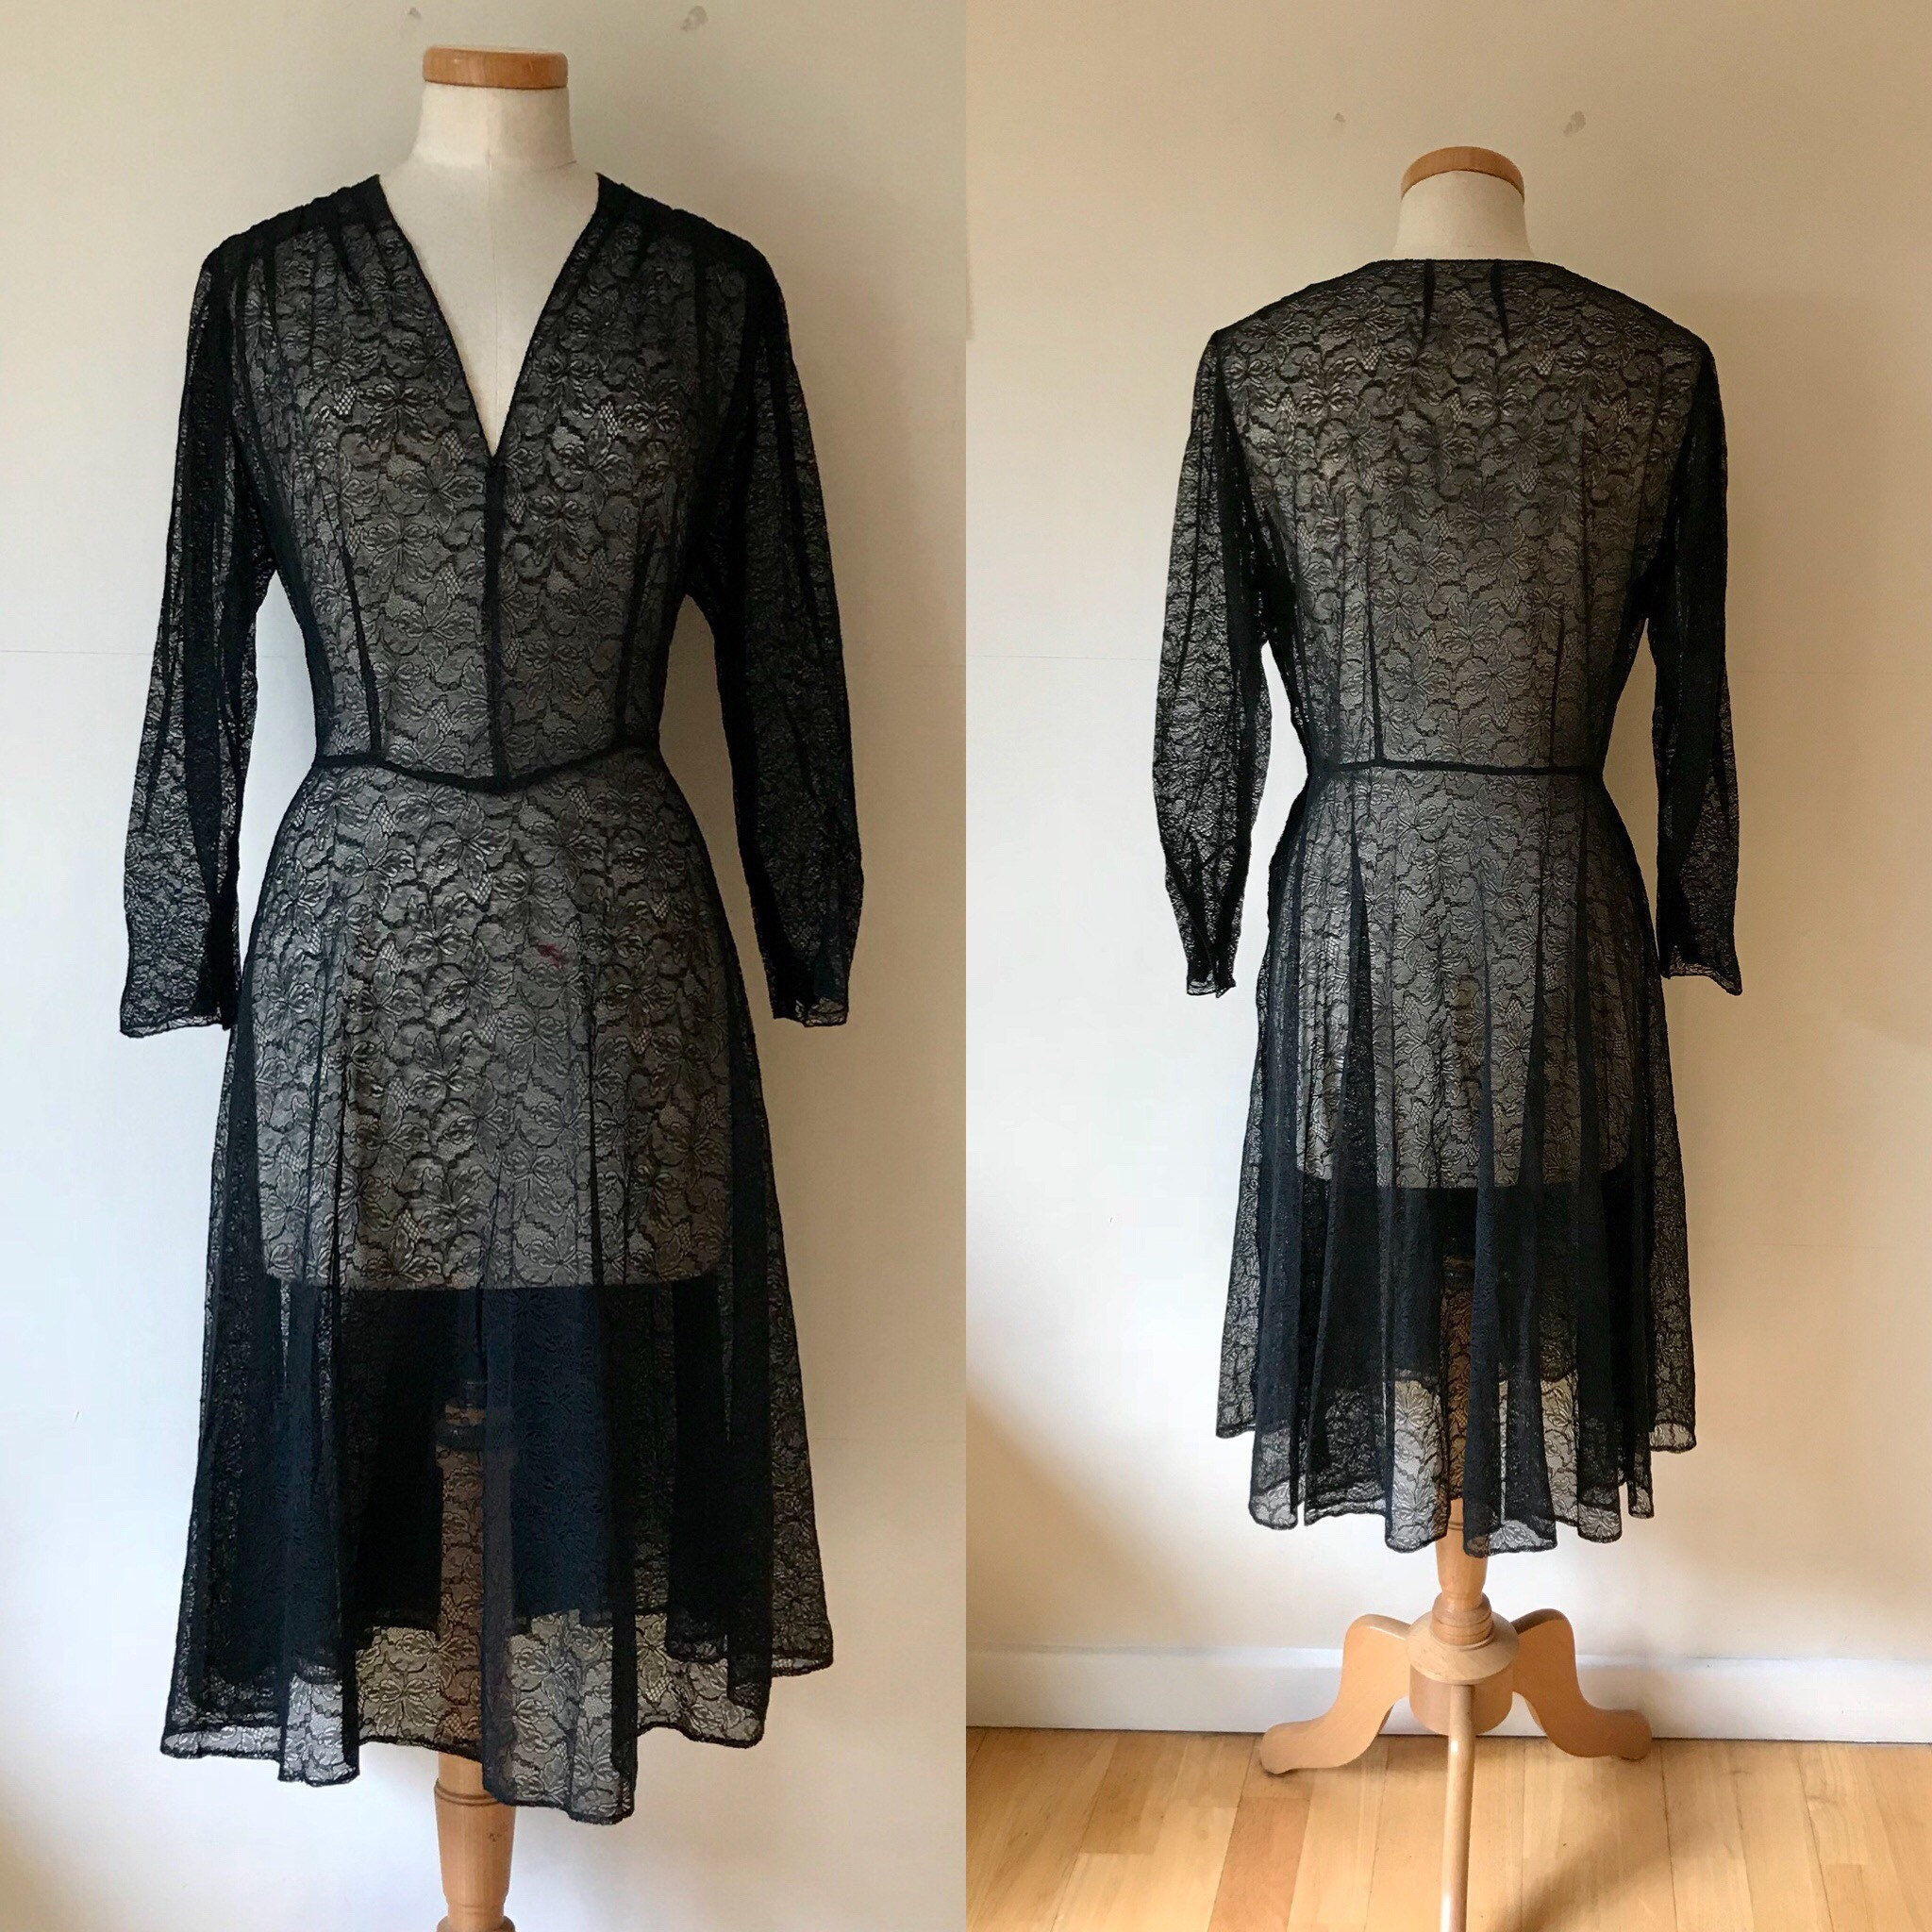 Vintage 1940s Swing Dress Black Chantilly Lace 40s